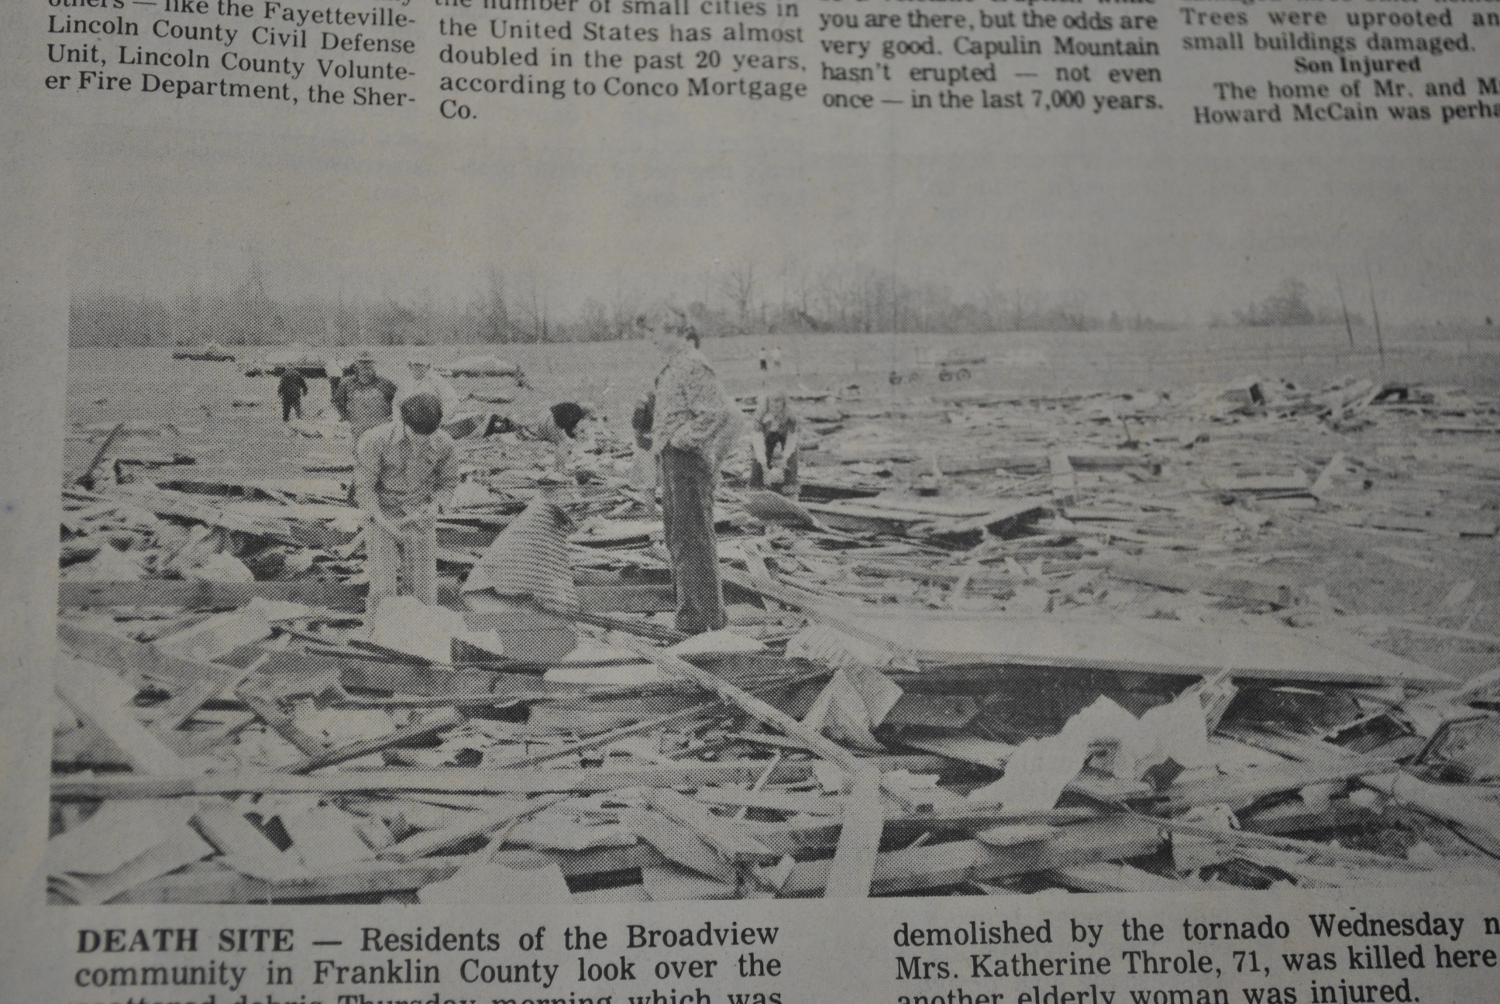 Franklin County TN: Damage Pictures from April 3-4th, 1974